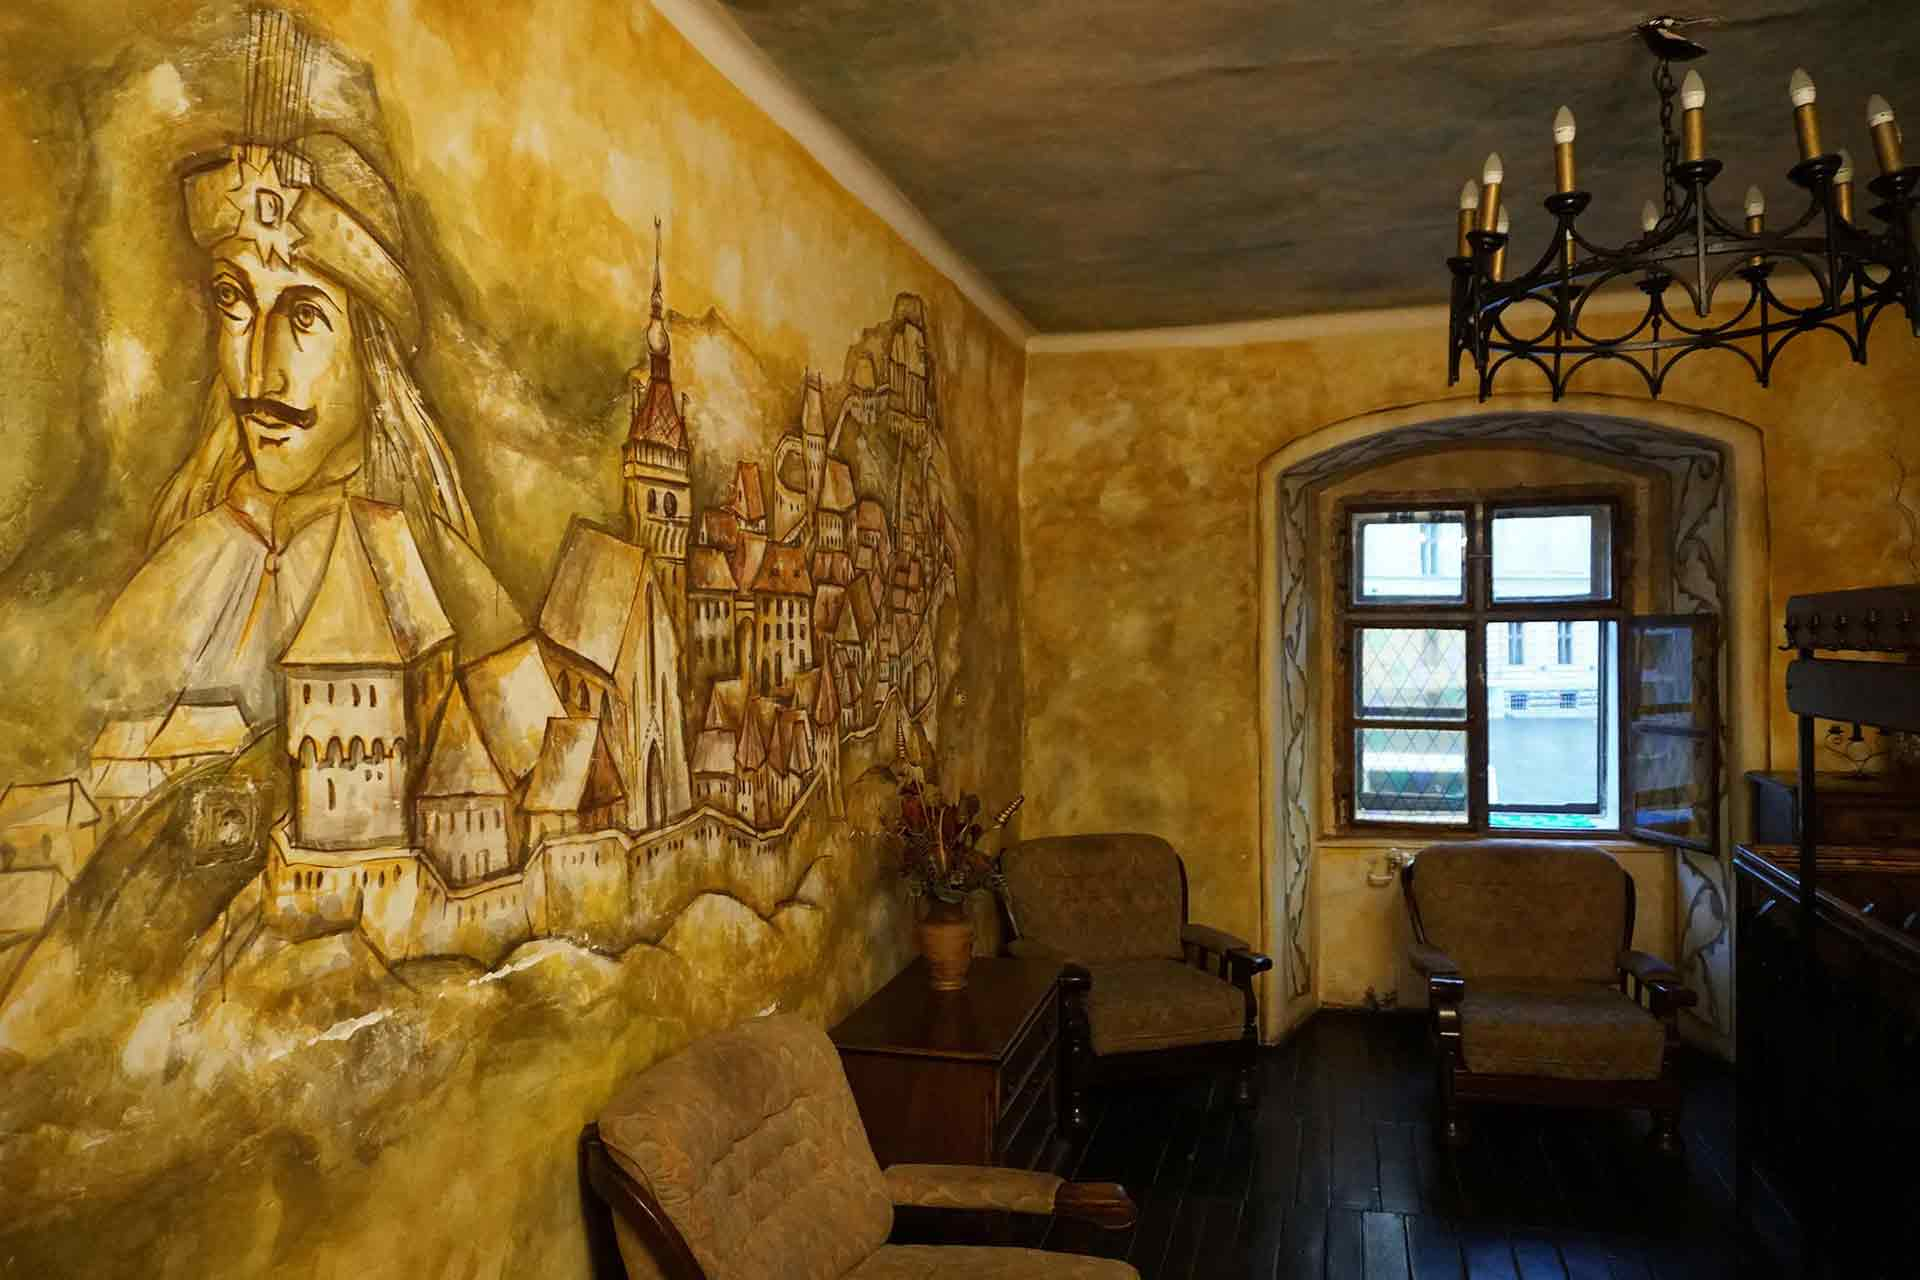 A photo of Dracula painting inside a resturant in Sighisoara where Vlad iii, the impaler was born.